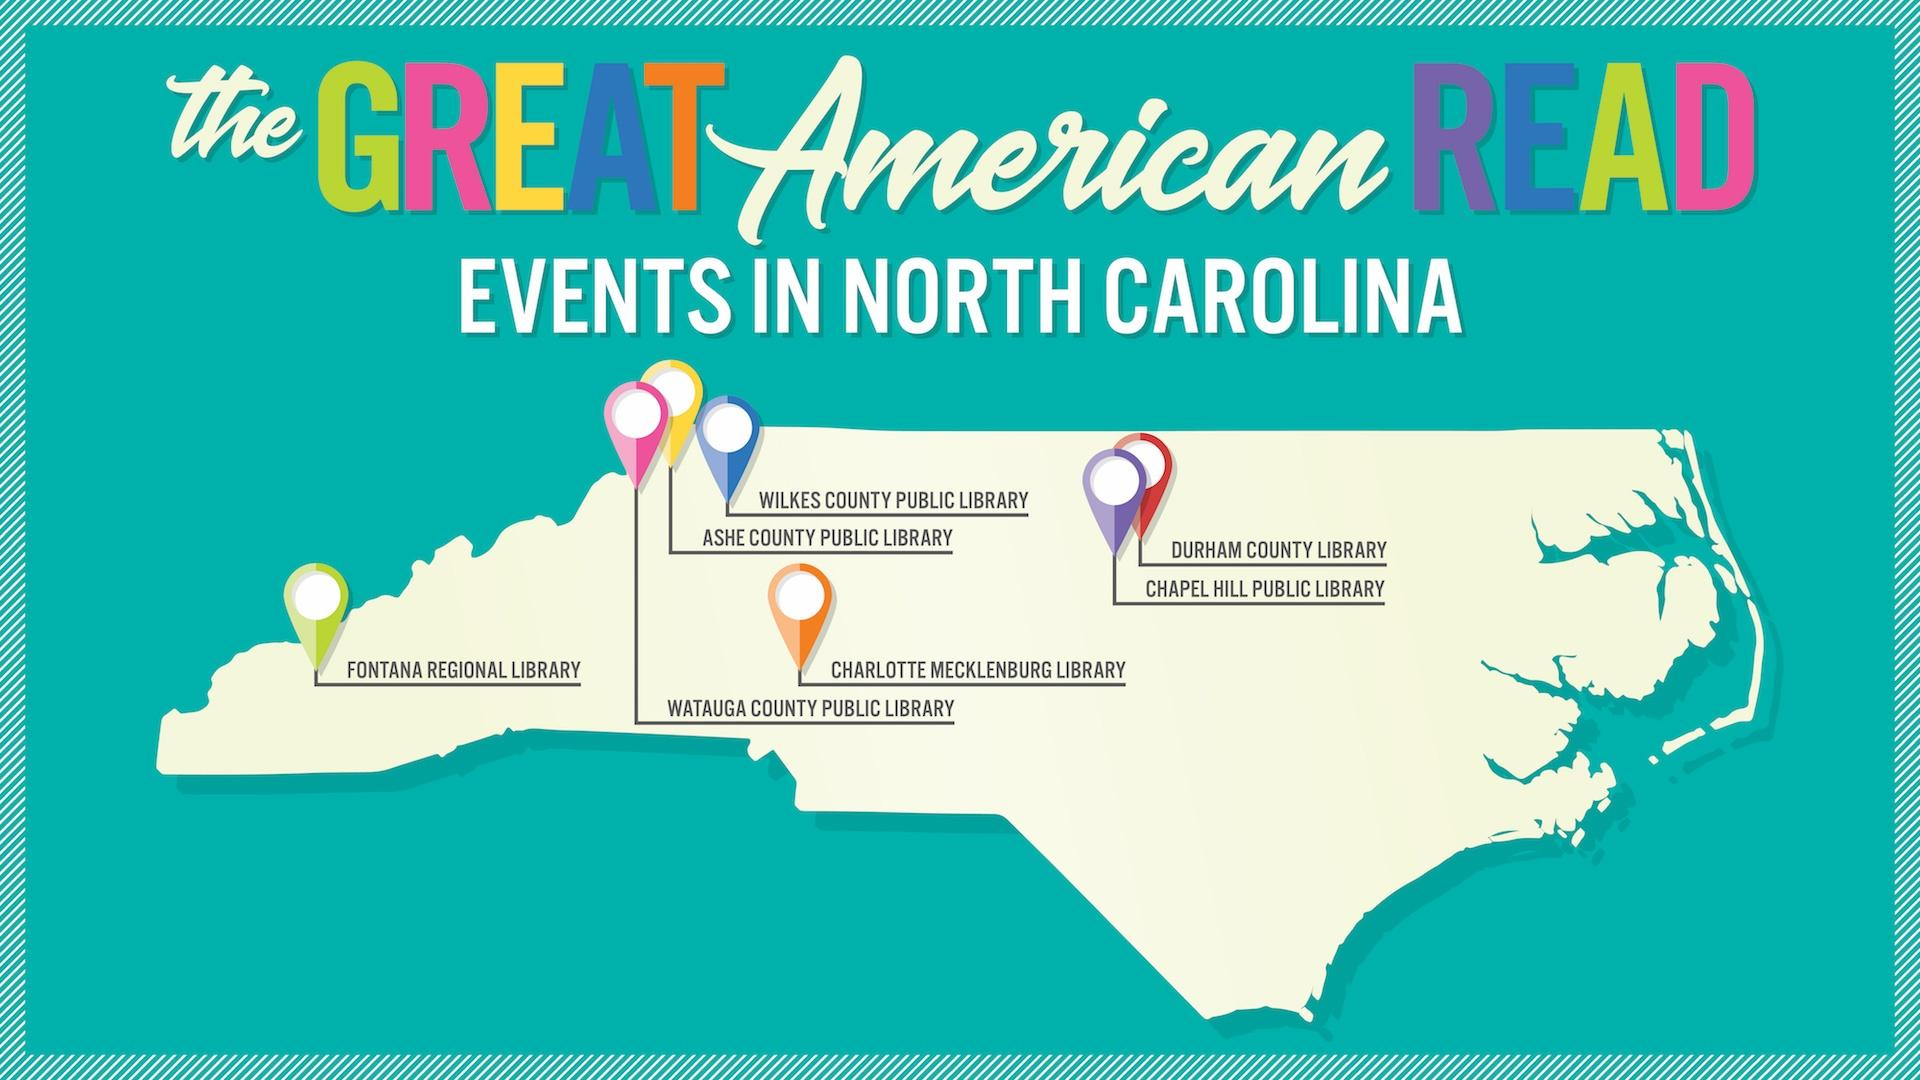 Map of NC with location markers for events in NC